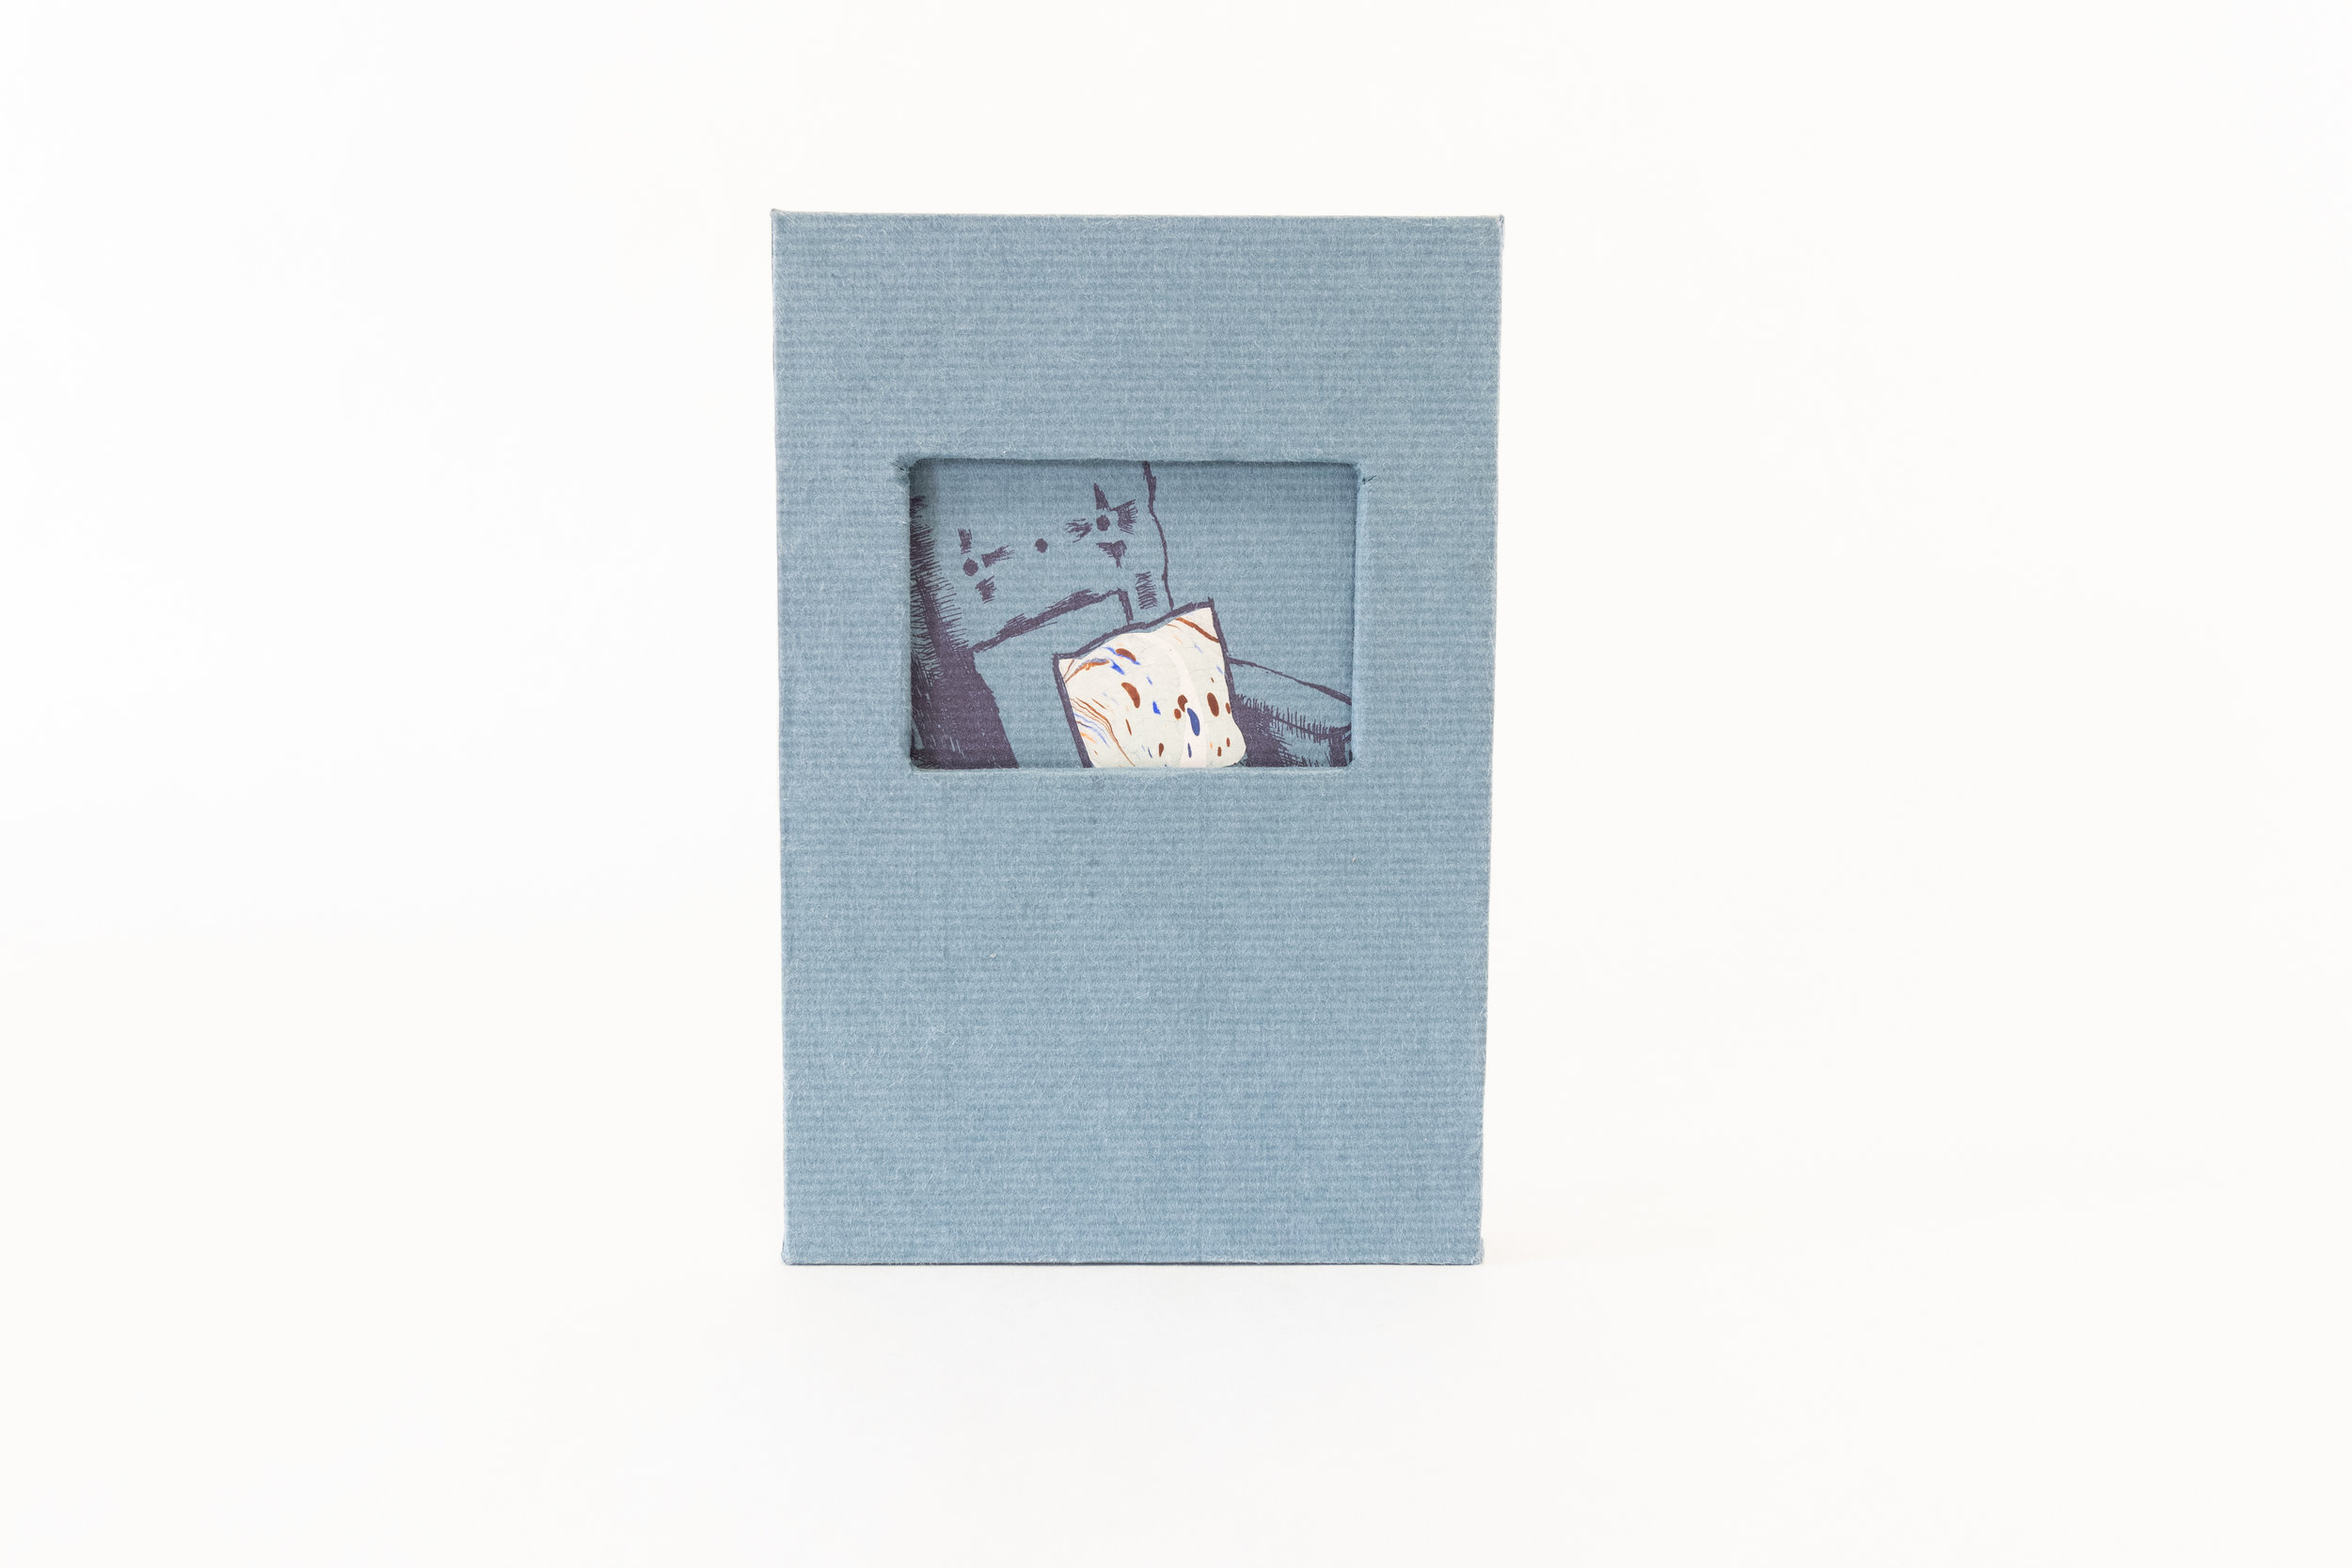 """Eileen Kitrick, """"For Rent,"""" Tri-fold leporello book and slipcase (letterpress-printed linocuts, photopolymer plates and pochoir), 2017, $280, Colorado Springs, CO"""